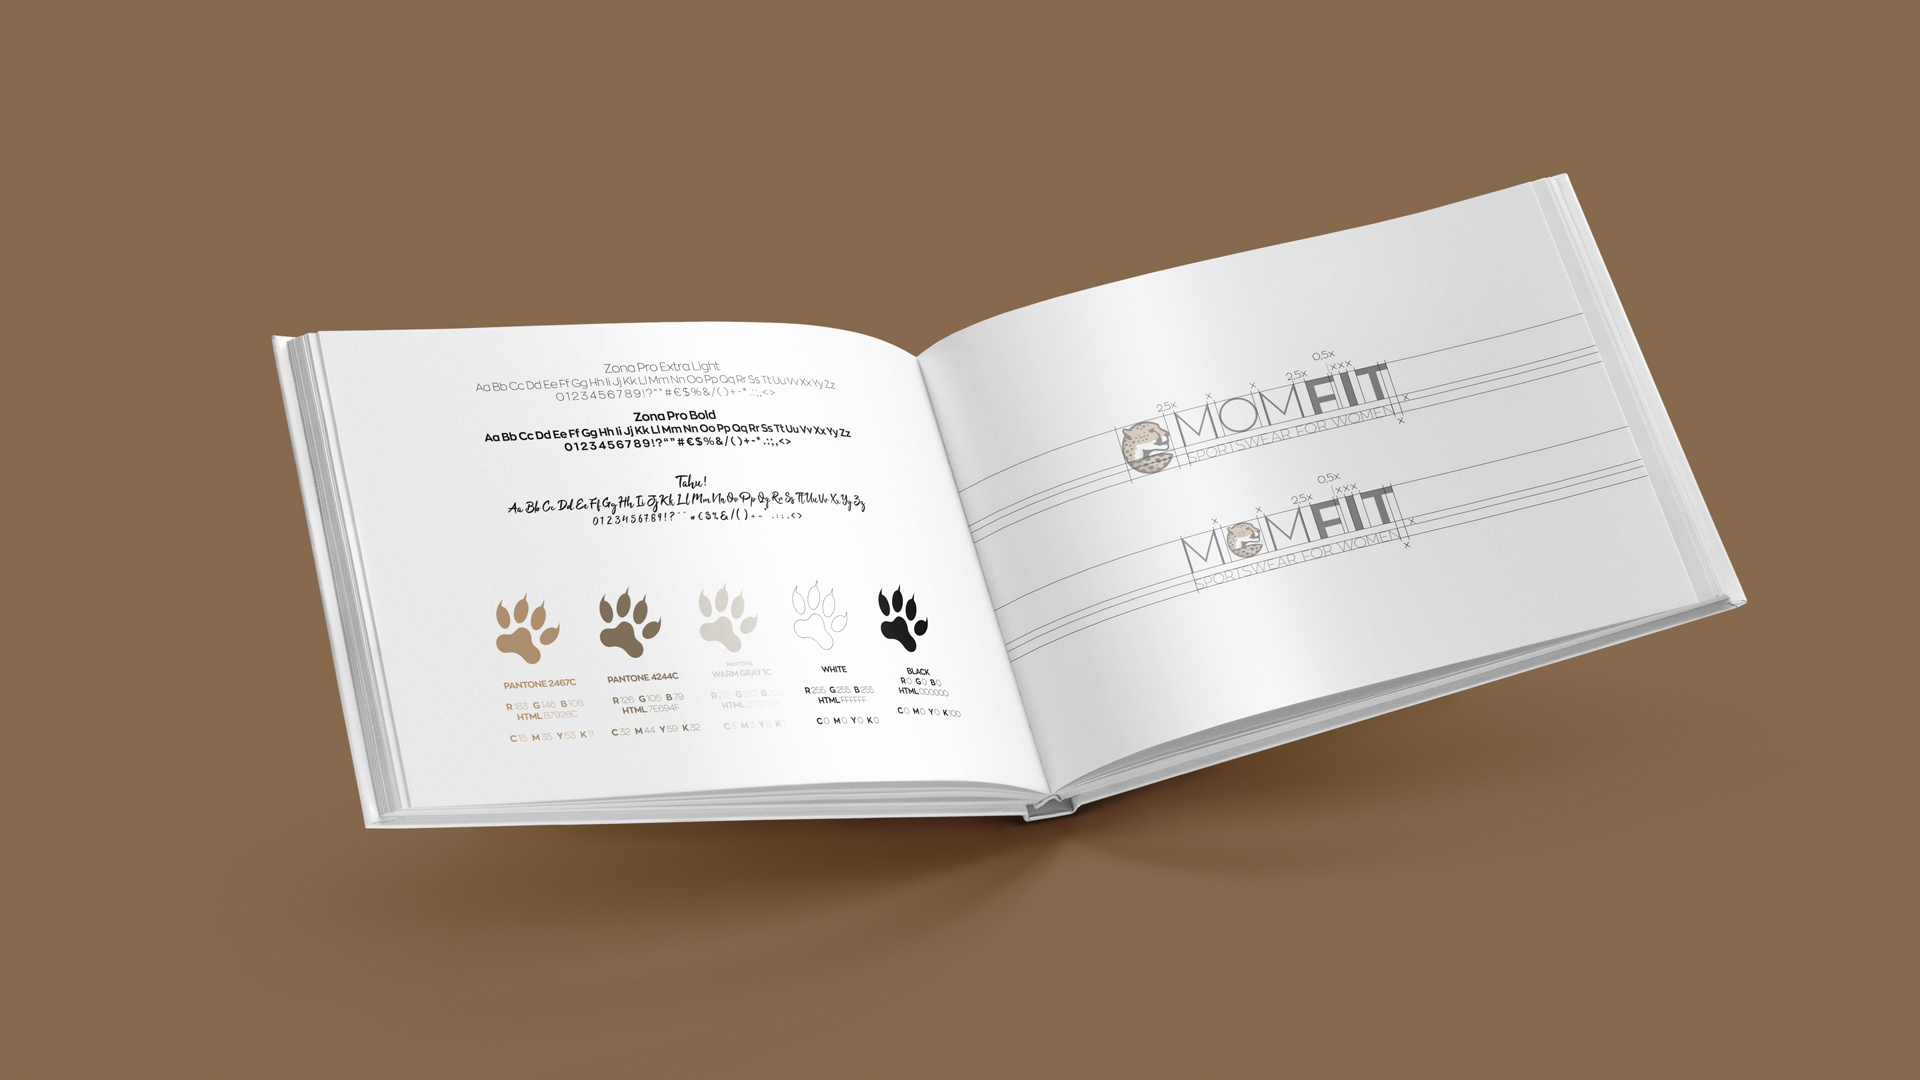 Sports Brand Design Brand book with typograpy, color palette and logo grid